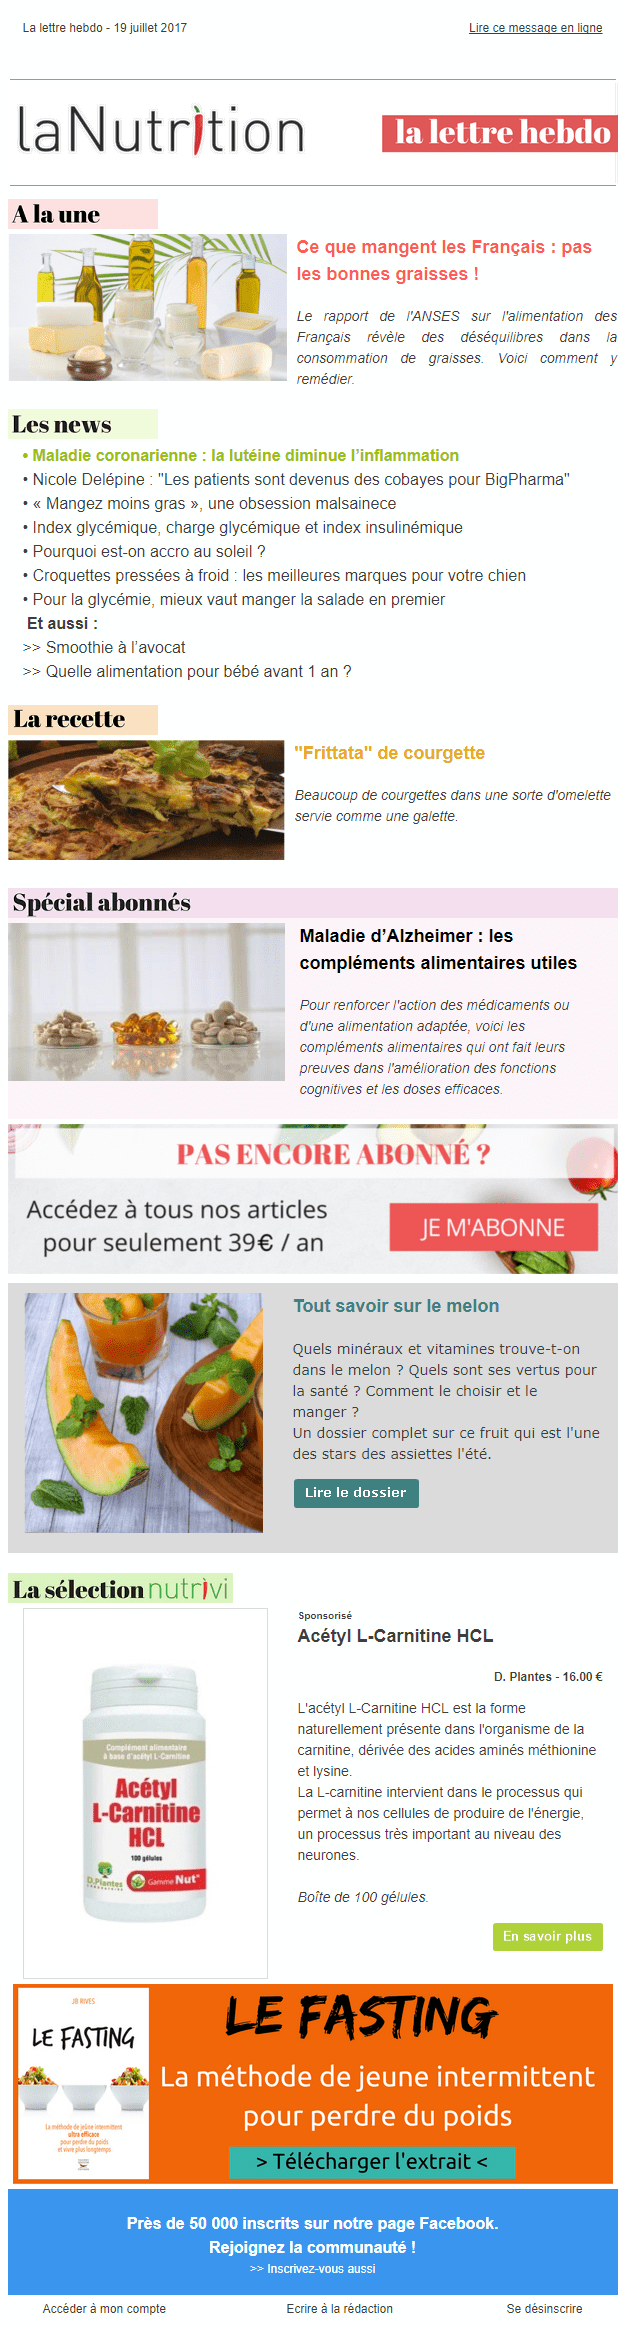 Exemple de newsletter #14 : La Nutrition